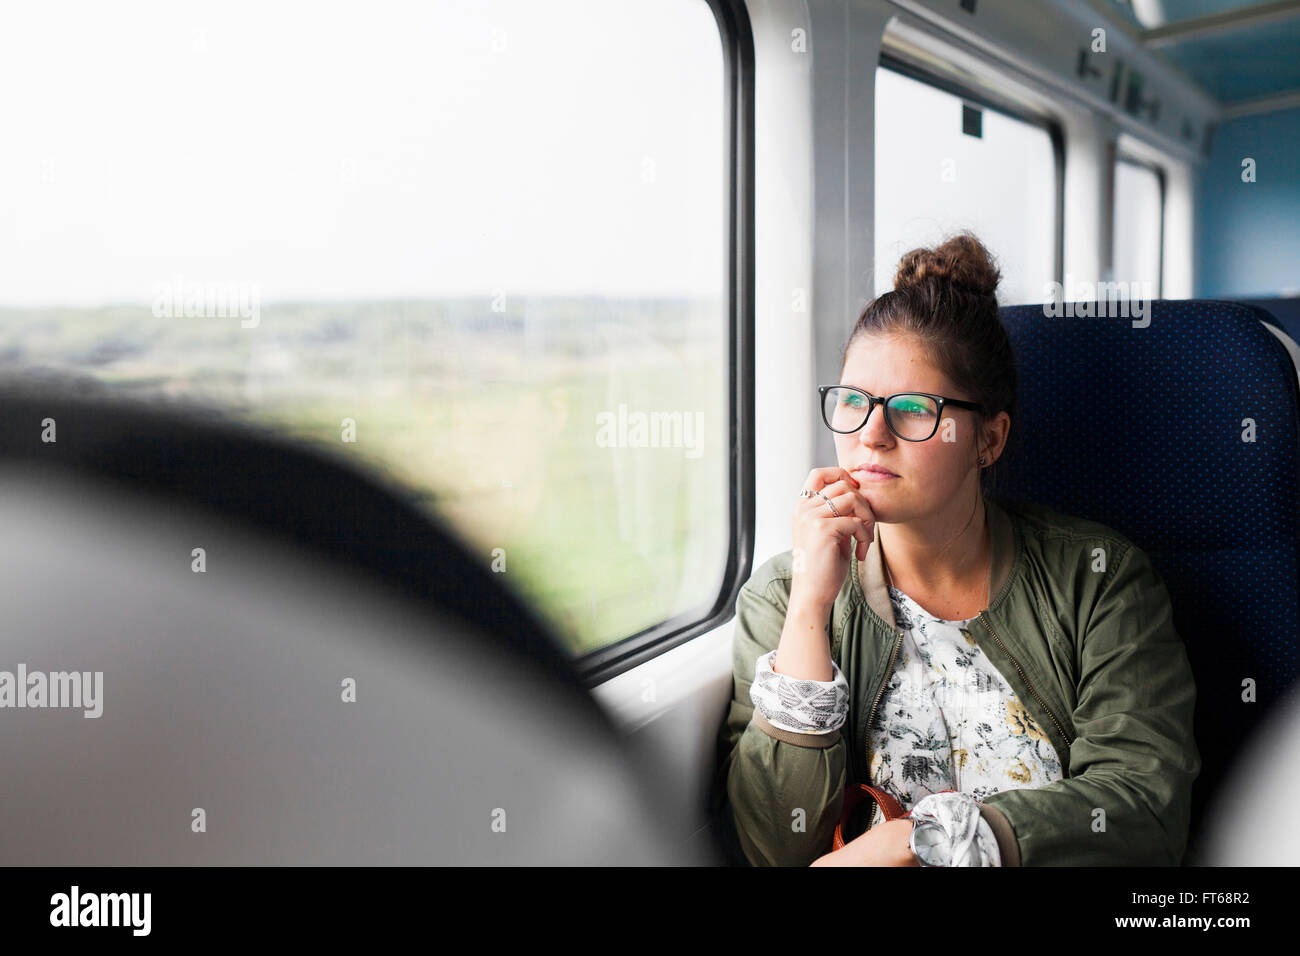 Thoughtful businesswoman with hand on chin looking through train window - Stock Image